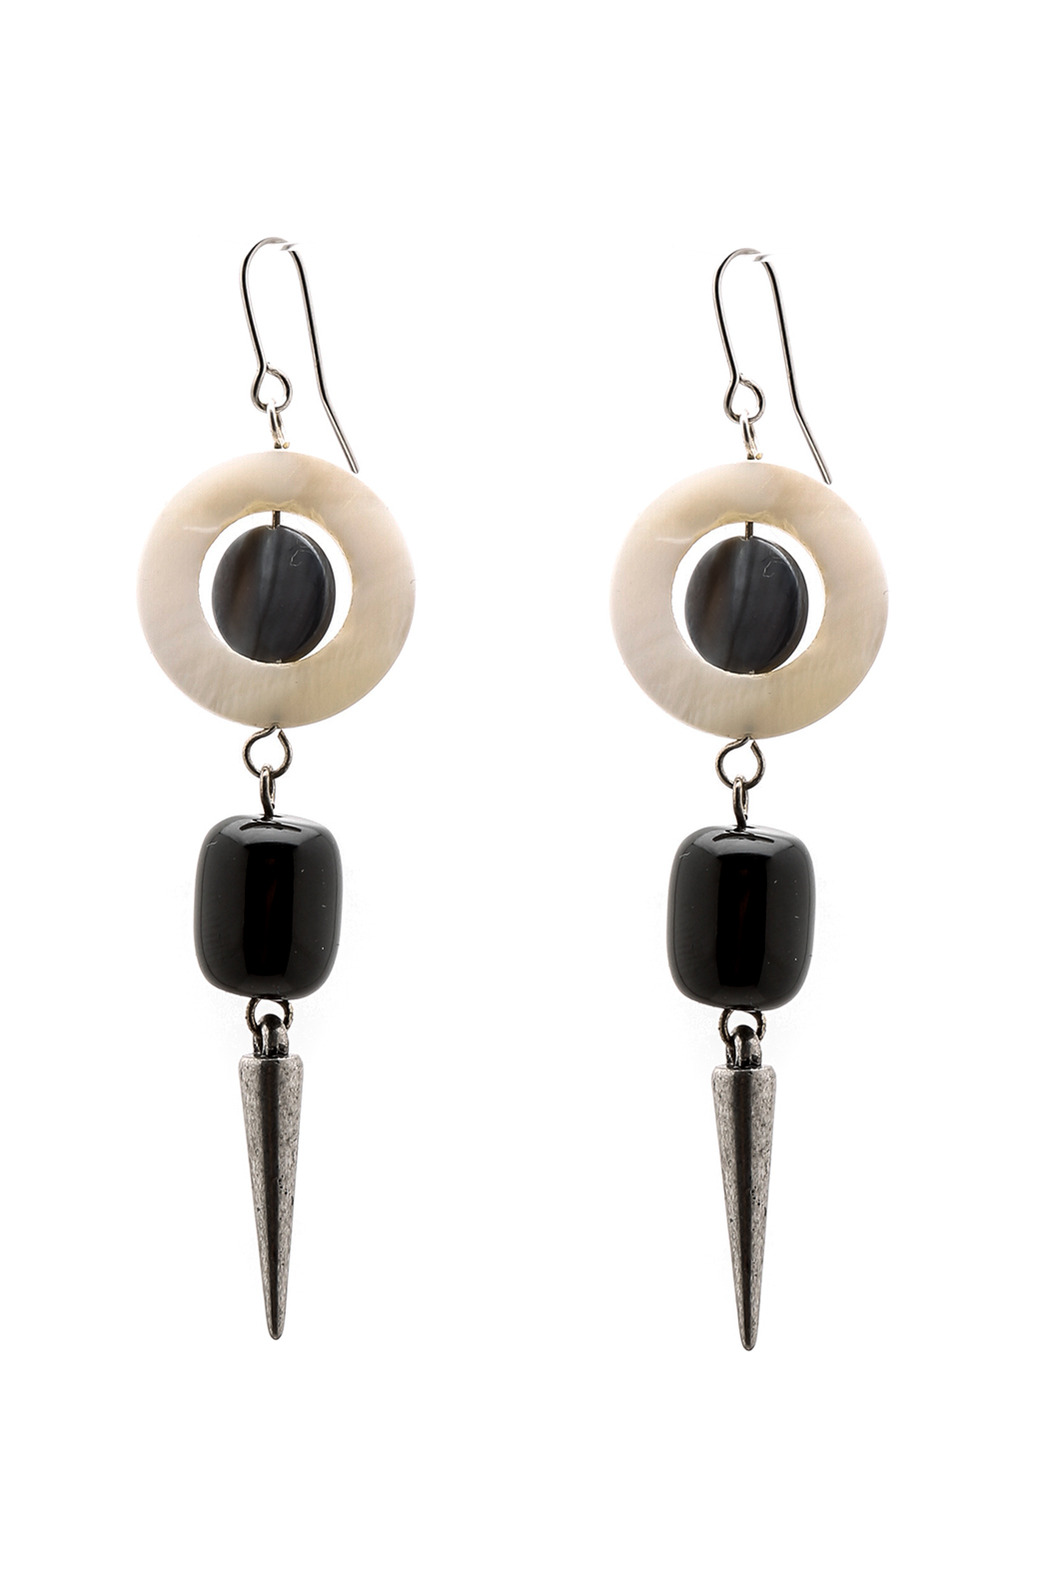 andrew tessier designs deco drop earrings from alabama by cybele 39 s boutique shoptiques. Black Bedroom Furniture Sets. Home Design Ideas